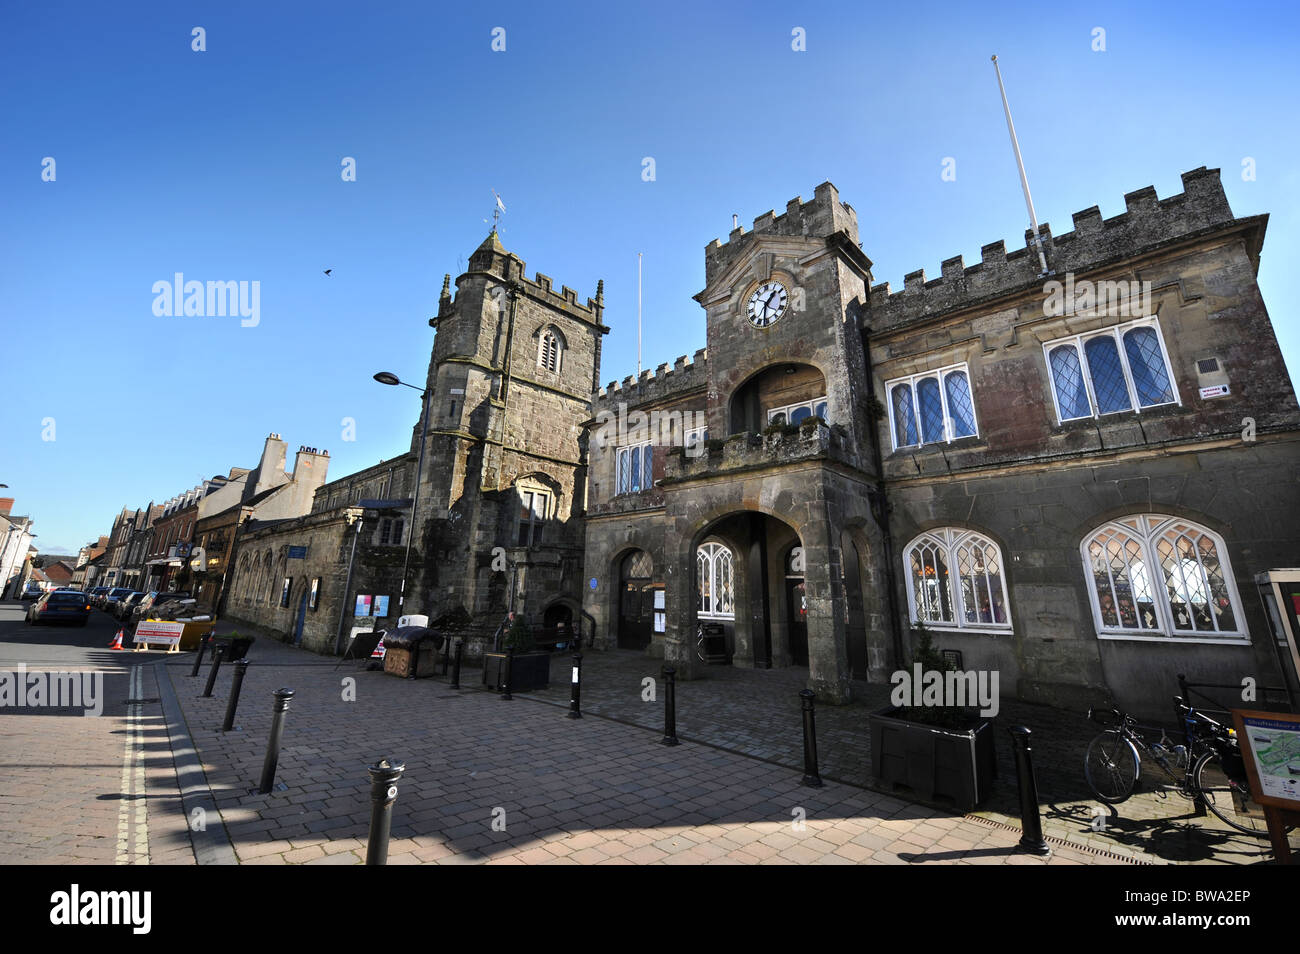 Shaftesbury Town Hall and St Peter's church (left) in the town centre Dorset UK - Stock Image